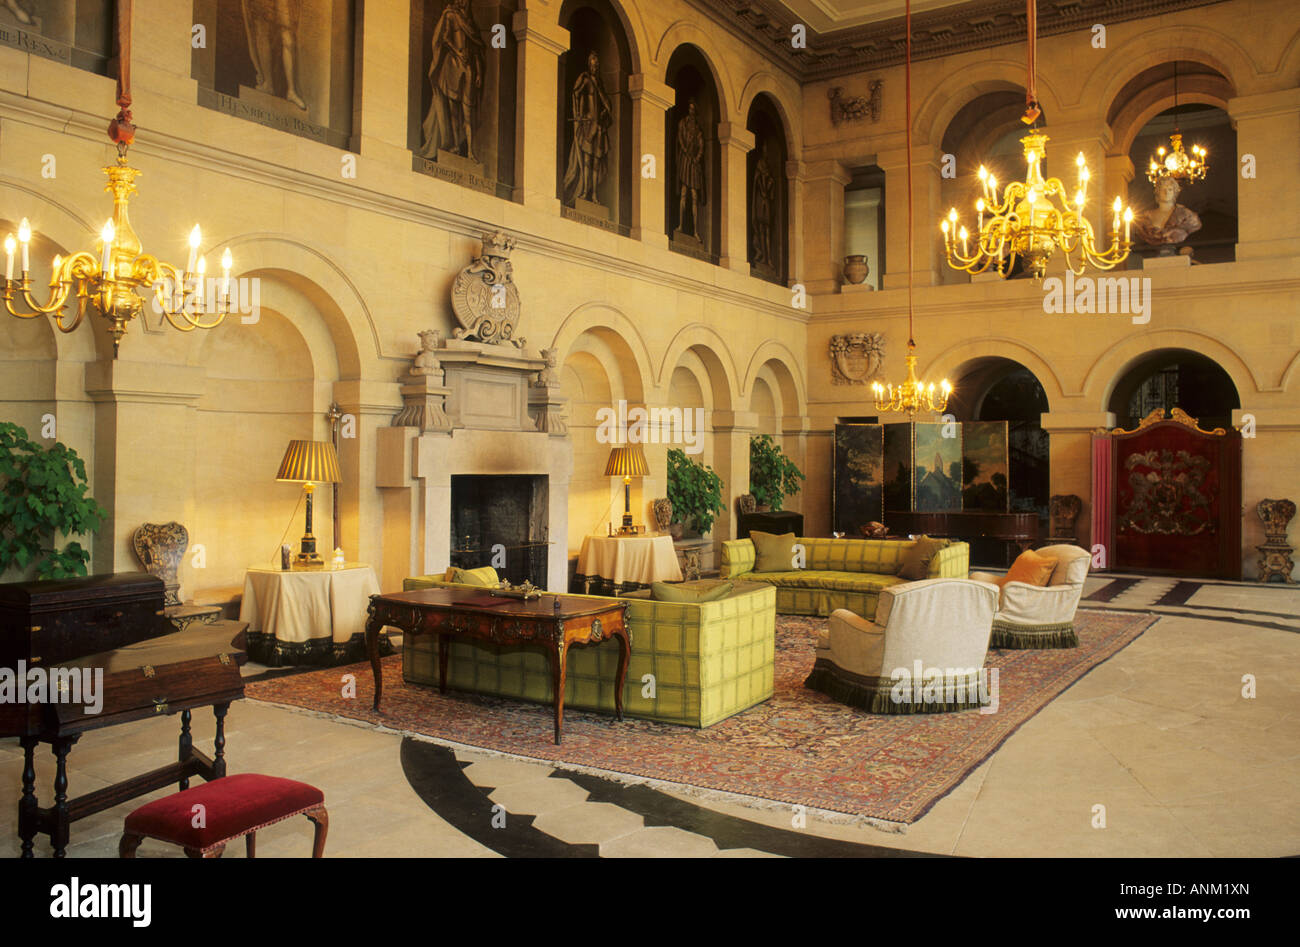 Stately Home Interiors. Grimsthorpe Castle Lincolnshire interior England UK English stately home  grand opulent travel tourism architecture Stately Home Interior Stock Photos